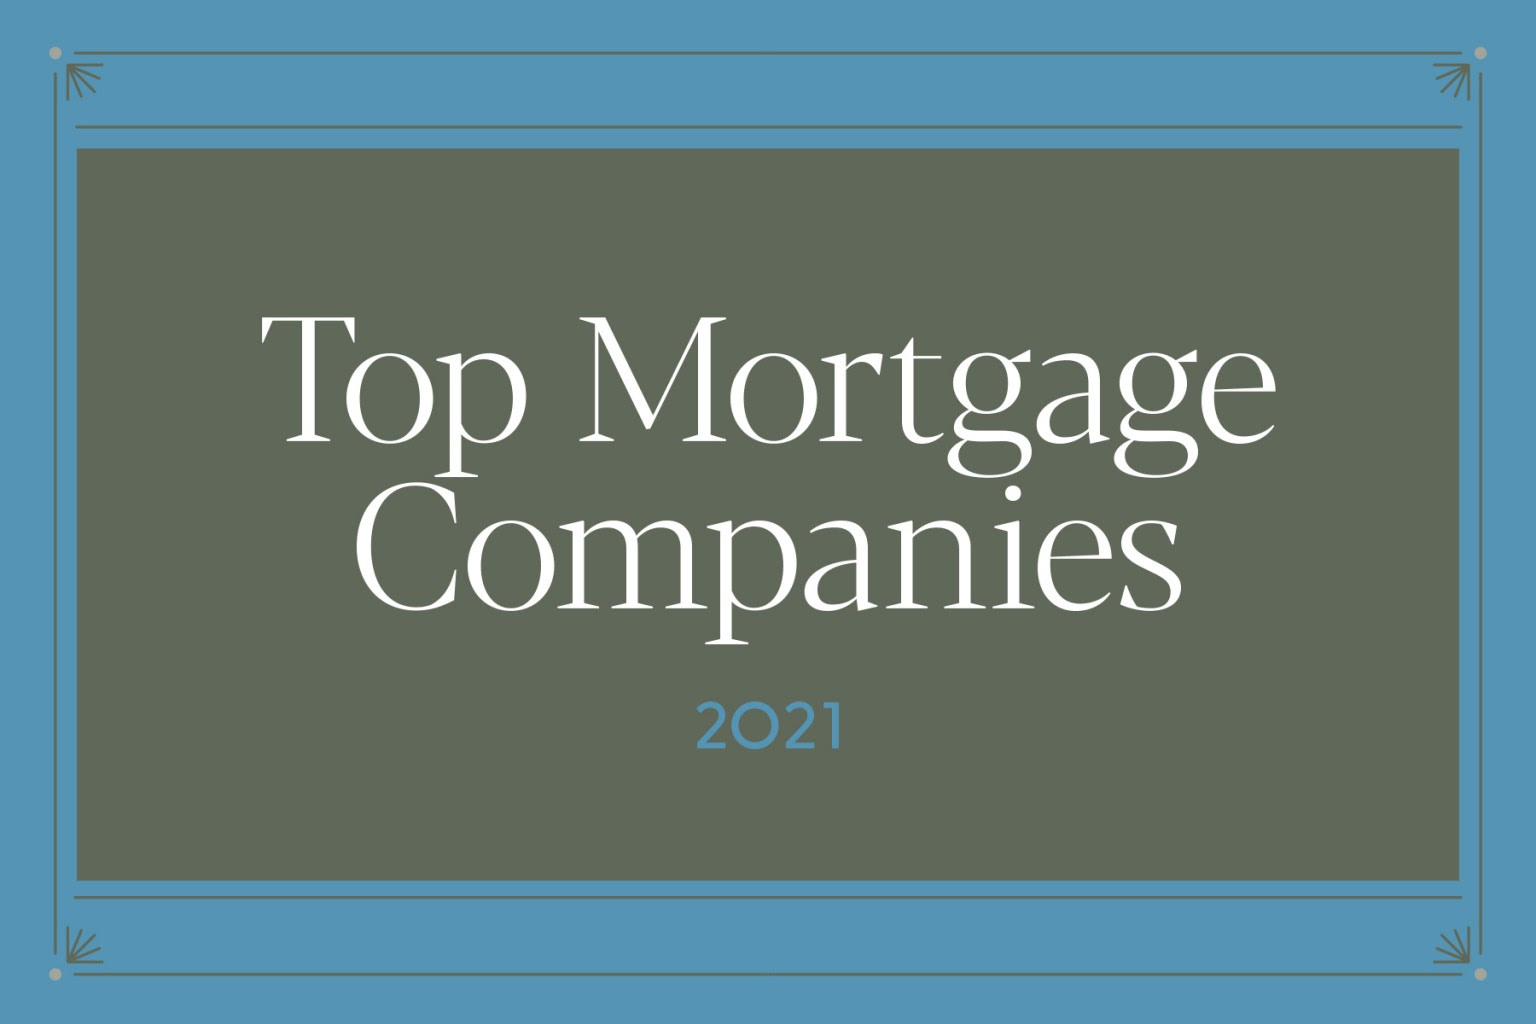 This section profiles the Top Mortgage Companies.